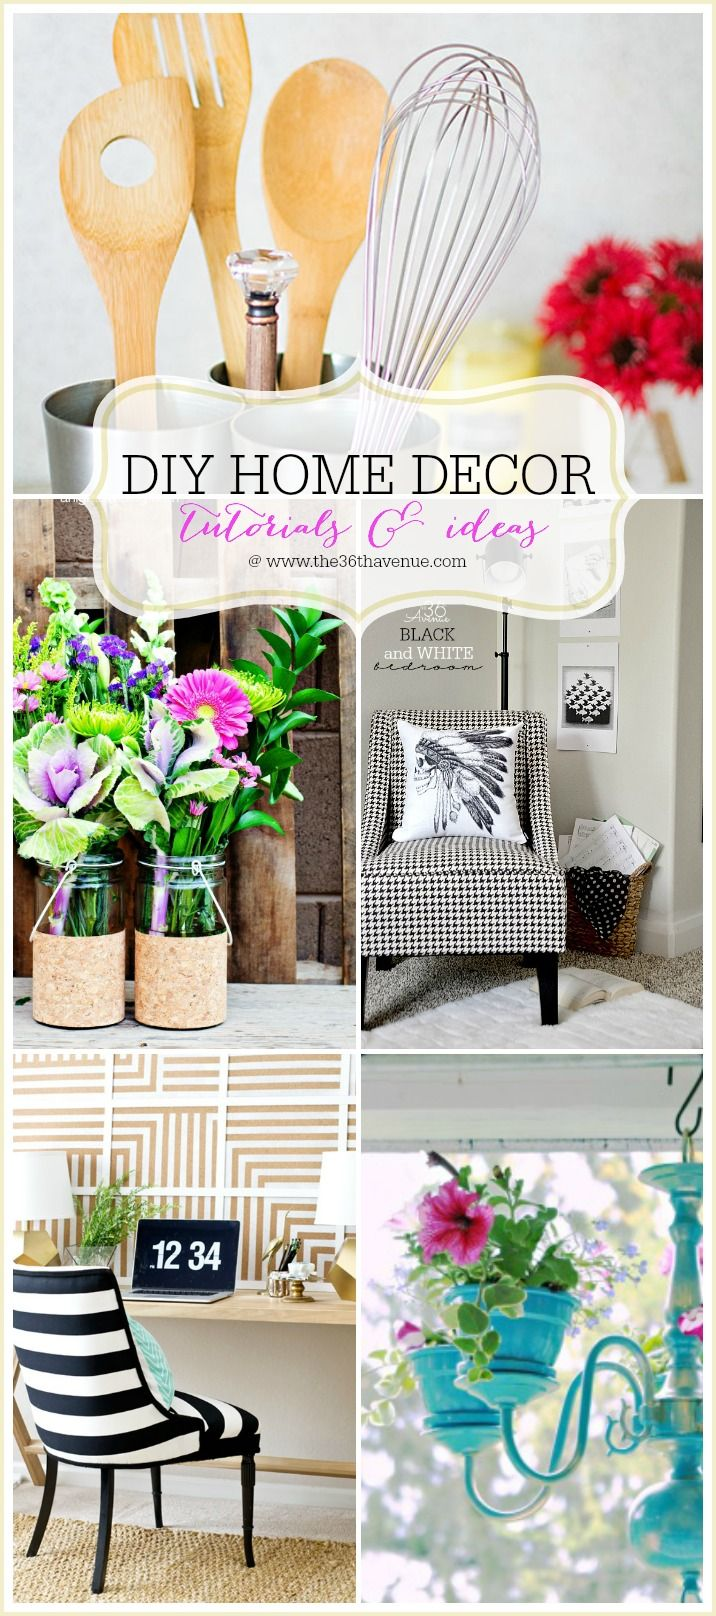 Fun Home Decor Ideas pleasant fun home decor ideas interesting fun home decor ideas unique interesting home decor ideas Home Decor Diy Projects